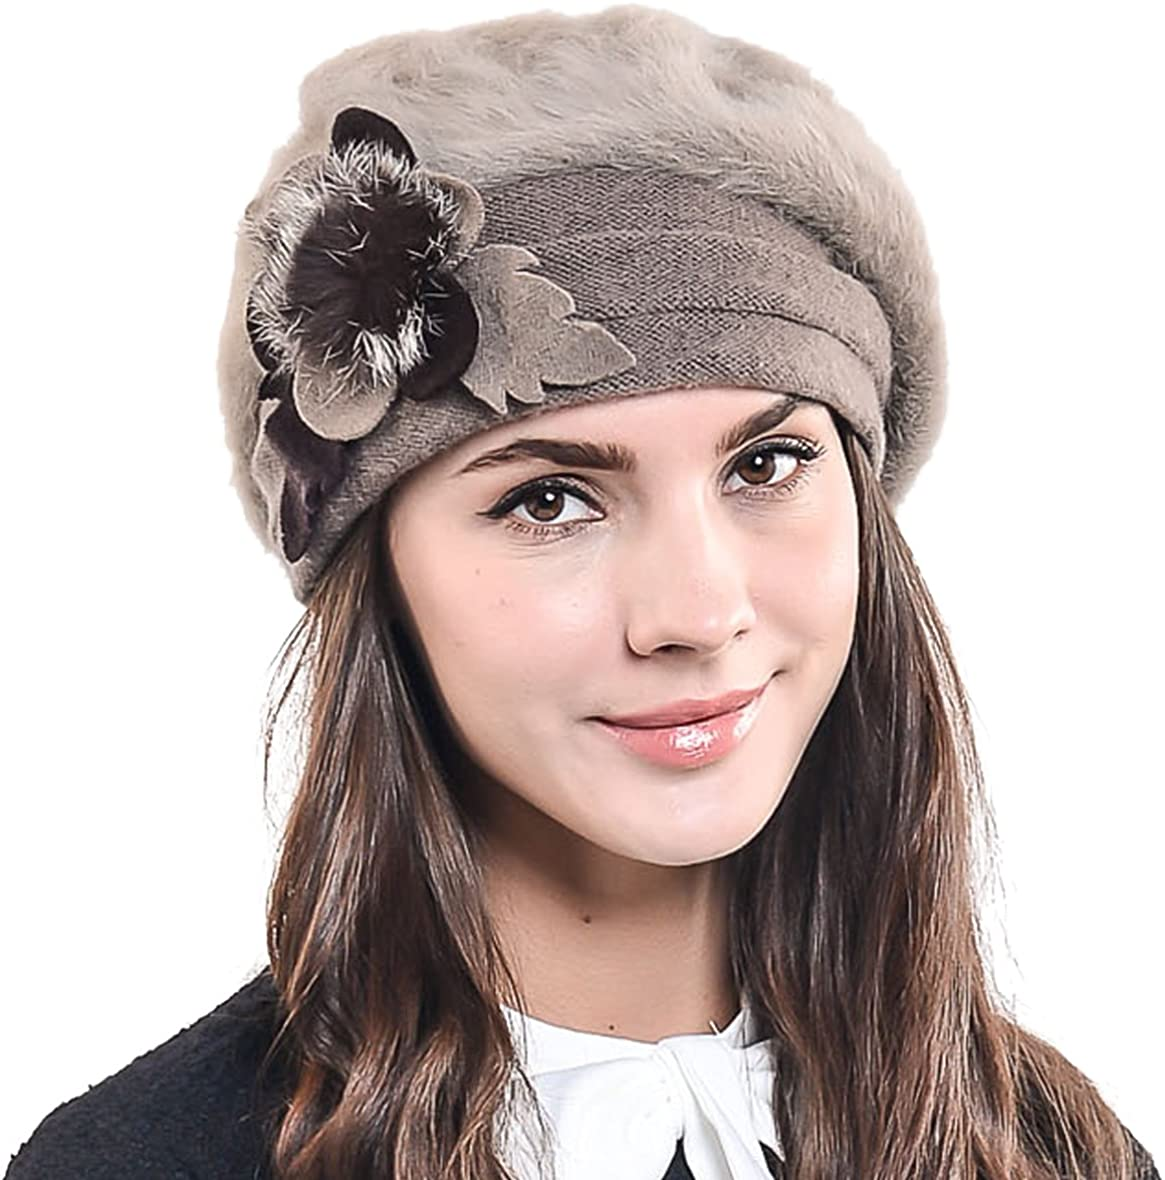 F&N STORY Lady French Beret Wool Beret Chic Beanie Winter Hat Jf-br034 (BR022-Brown Angora) at  Women's Clothing store